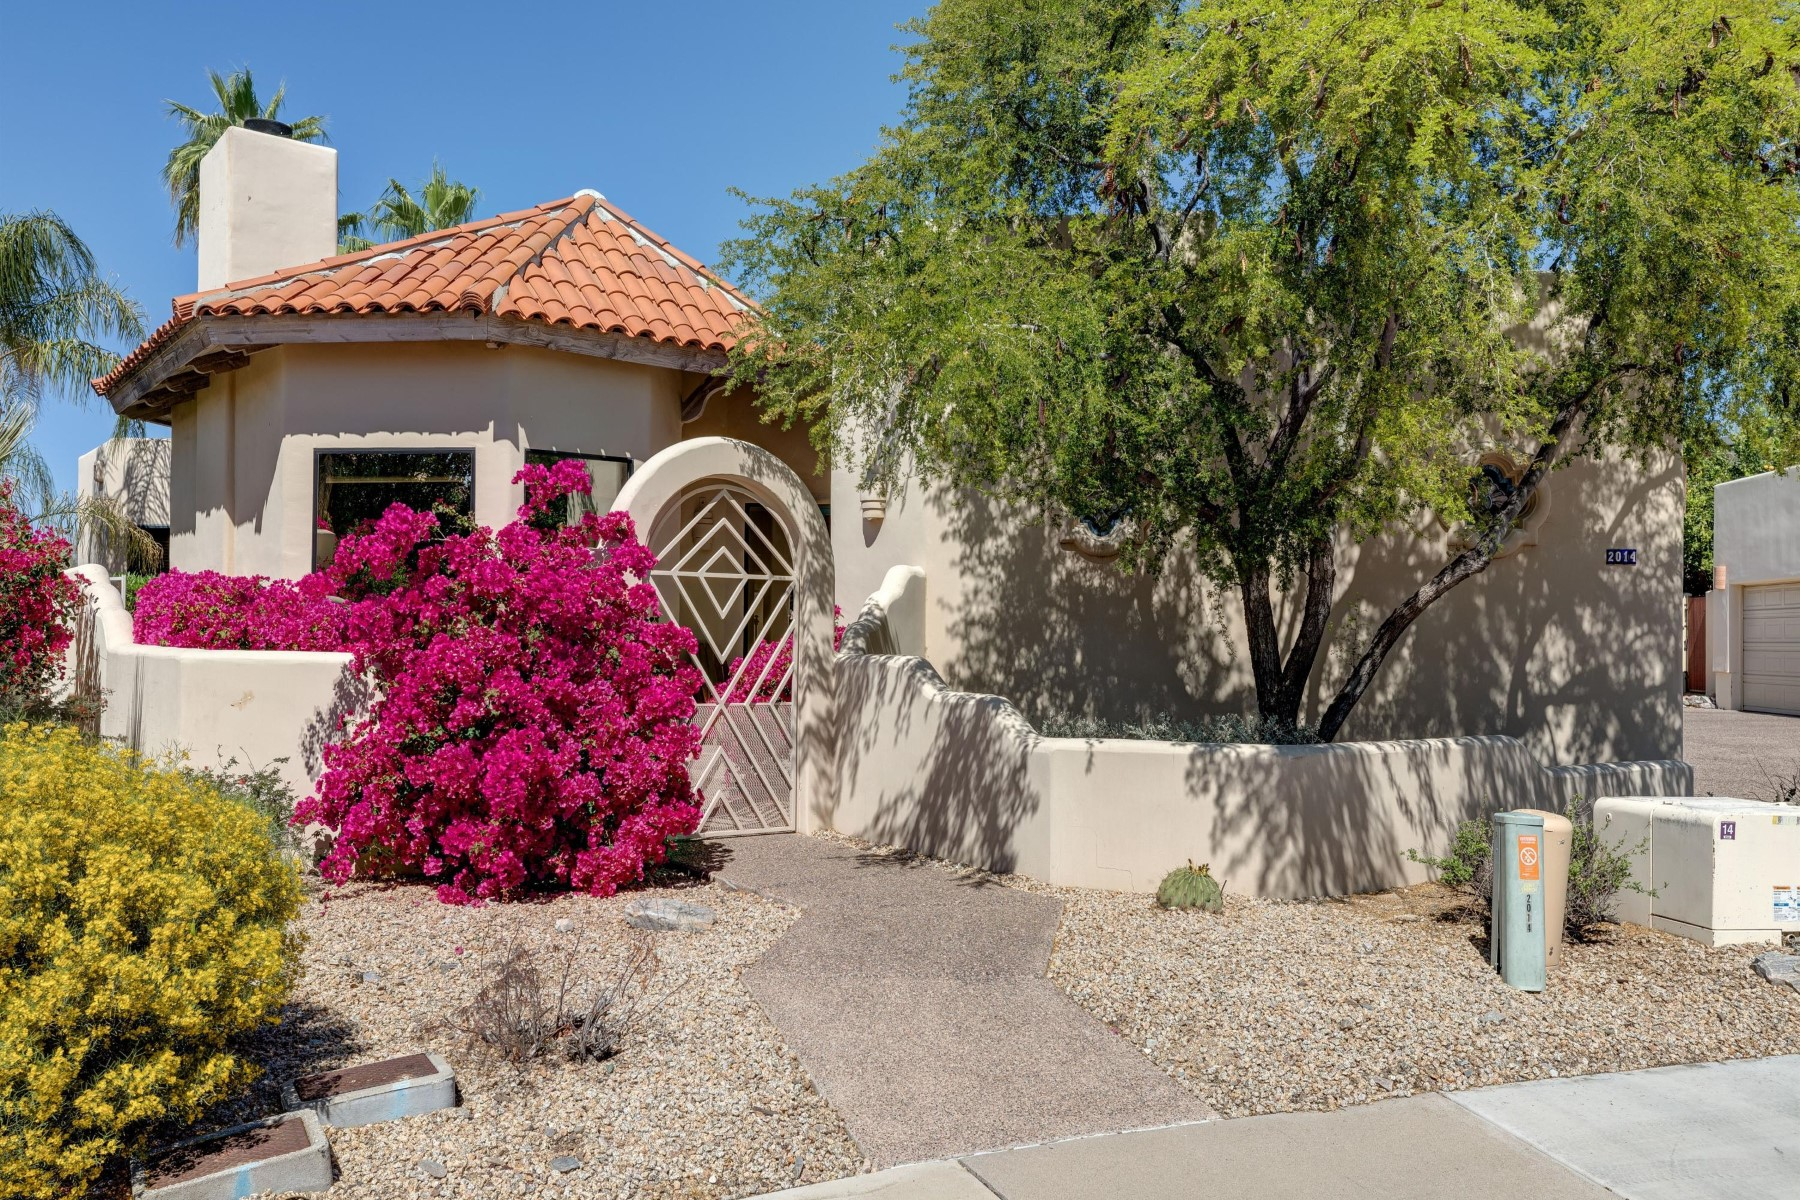 Single Family Home for Sale at Beautifully designed home located in gated Villas Encantadas 2014 E Northview Ave Phoenix, Arizona, 85020 United States